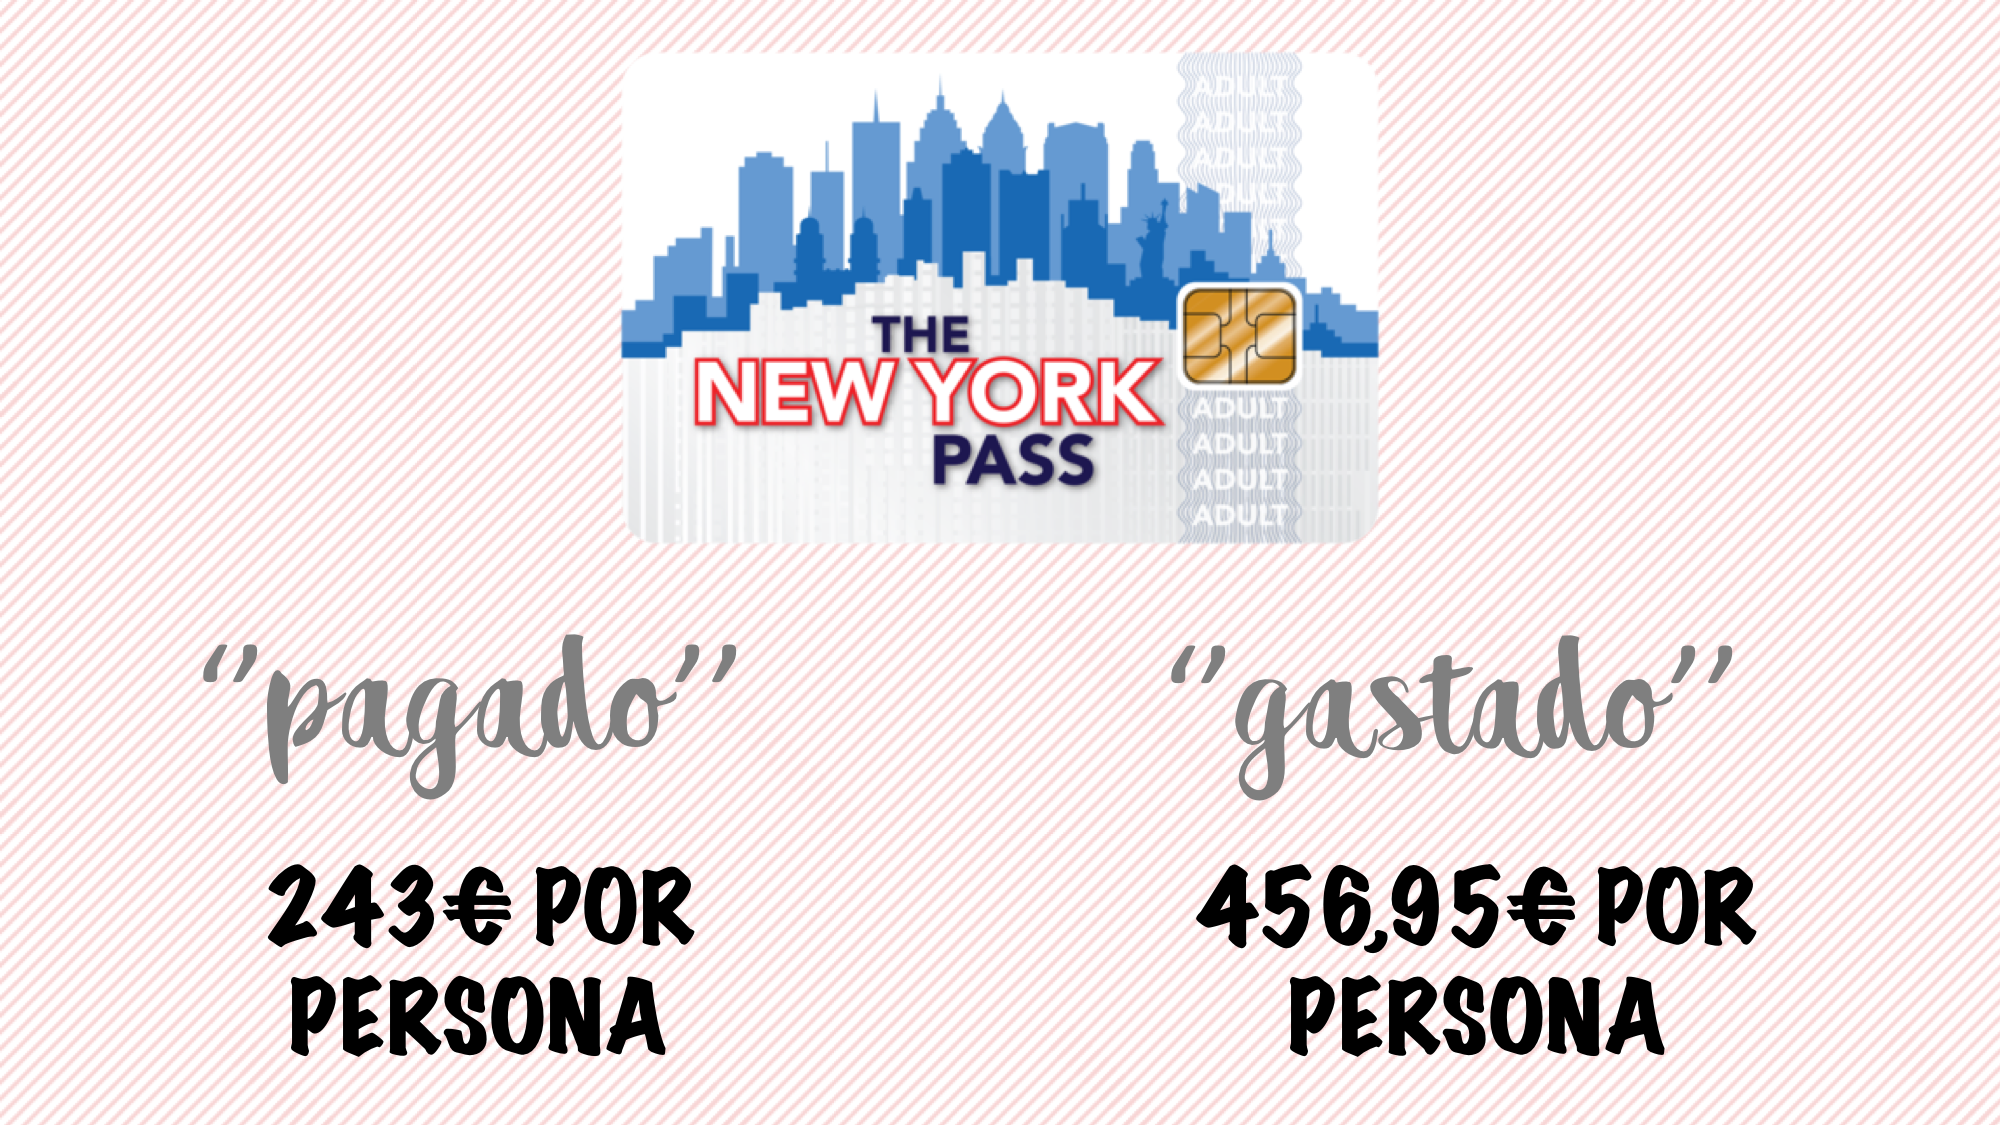 Gastado New York Pass